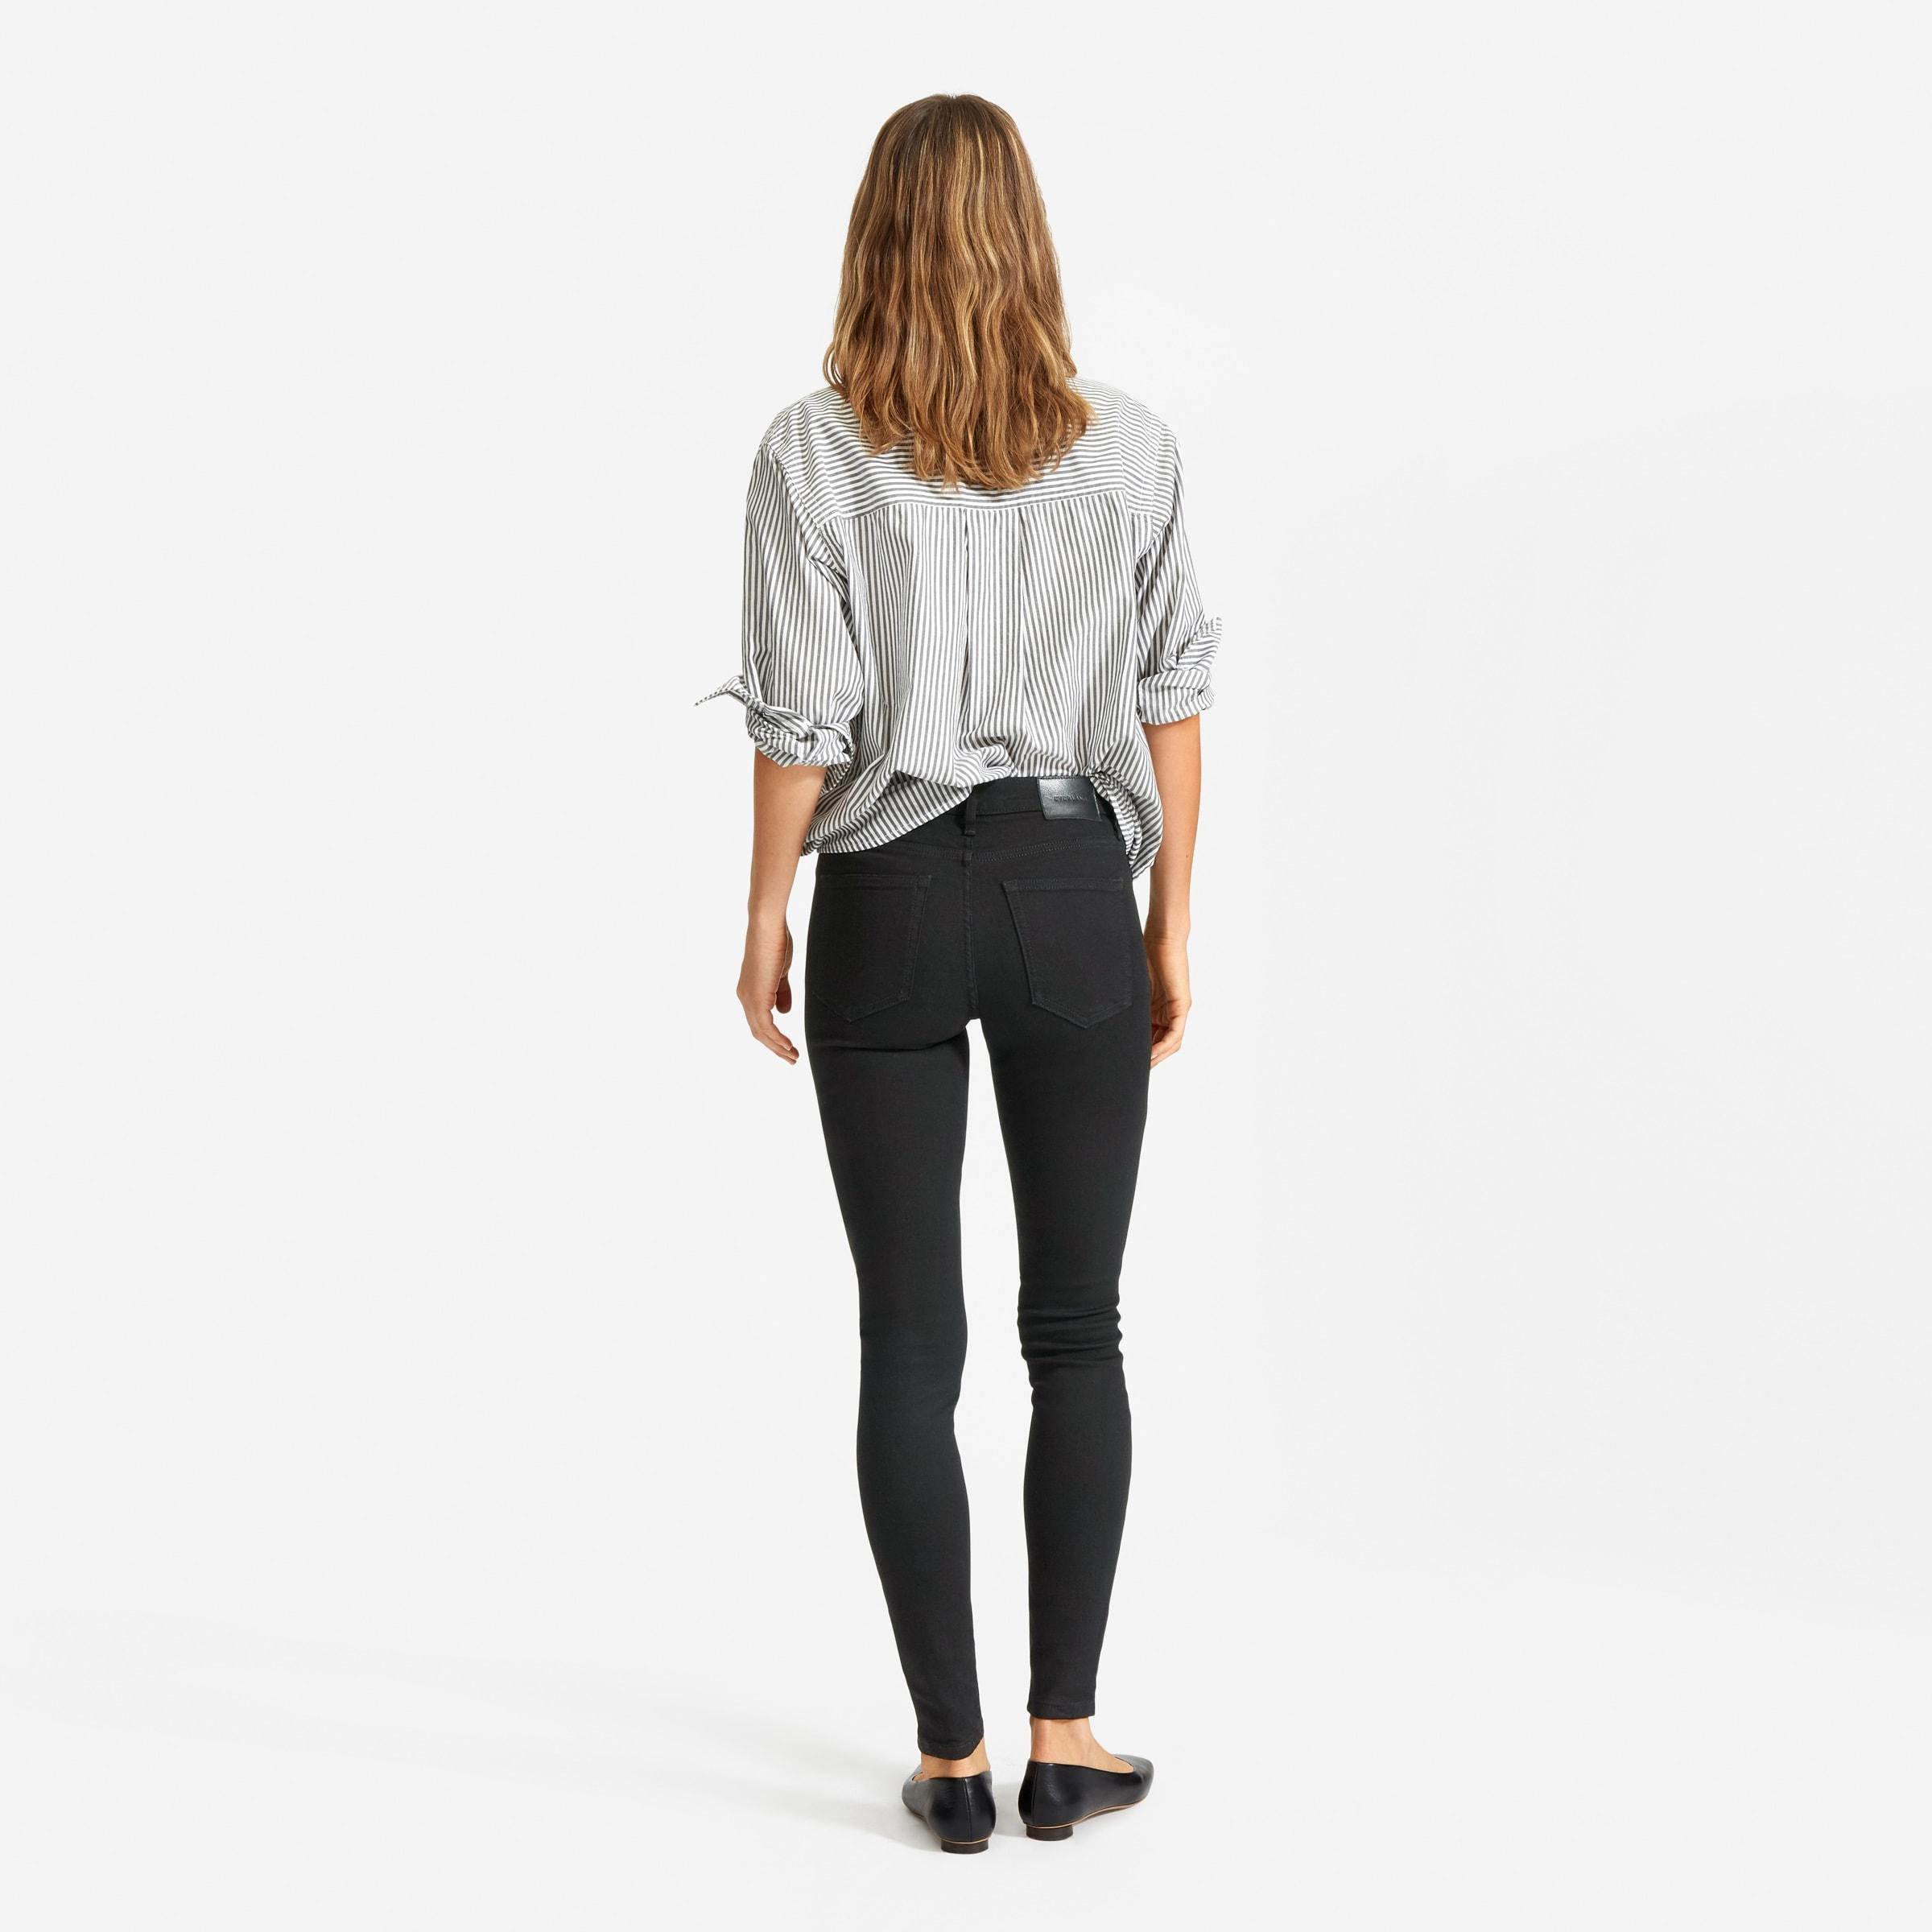 The Authentic Stretch Mid-Rise Skinny 4